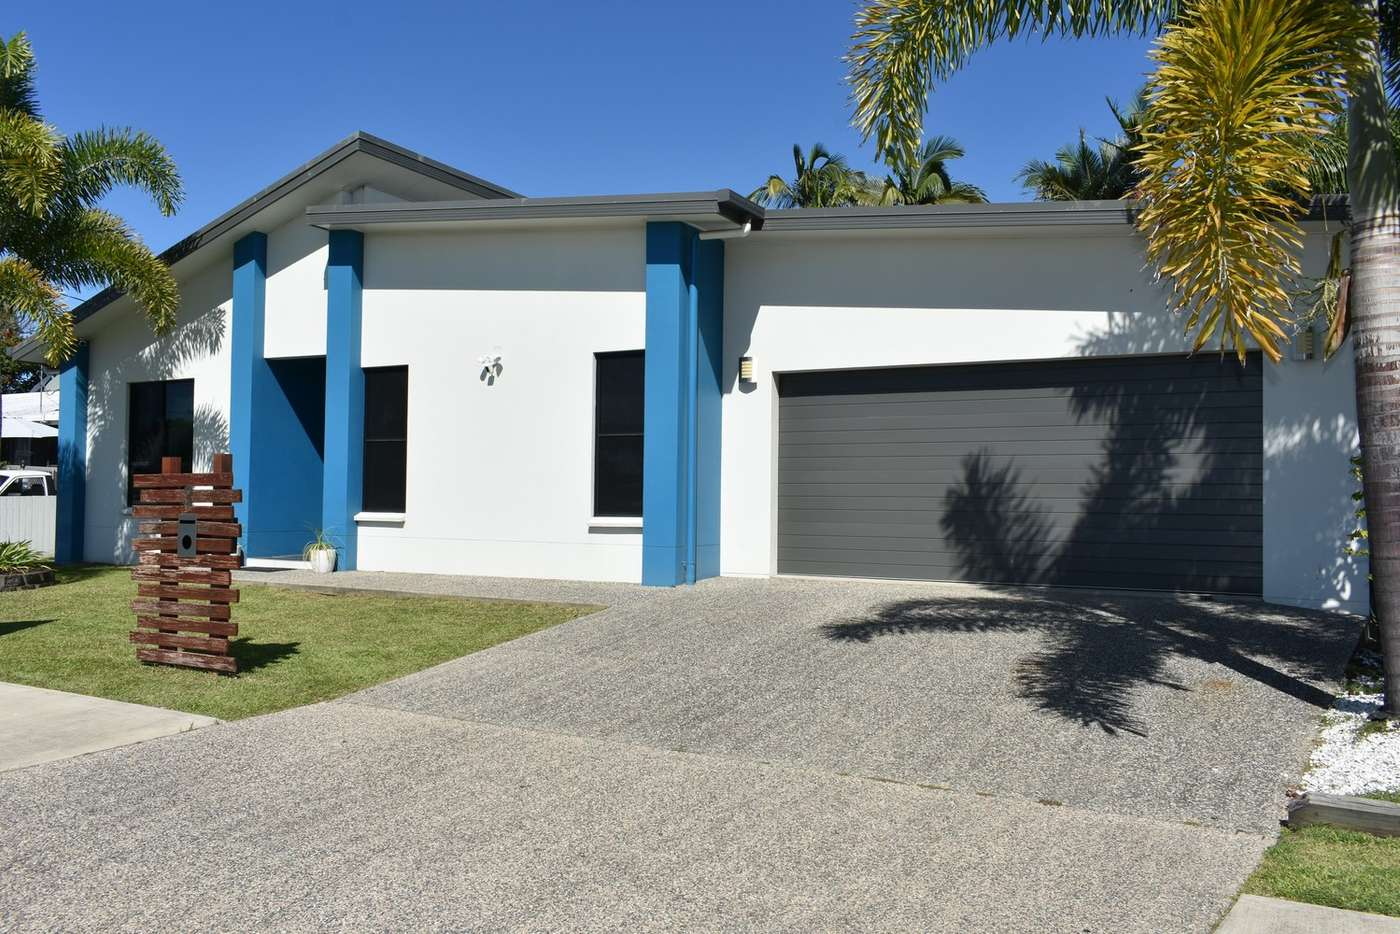 Main view of Homely house listing, 3 Holts Road, Beaconsfield QLD 4740